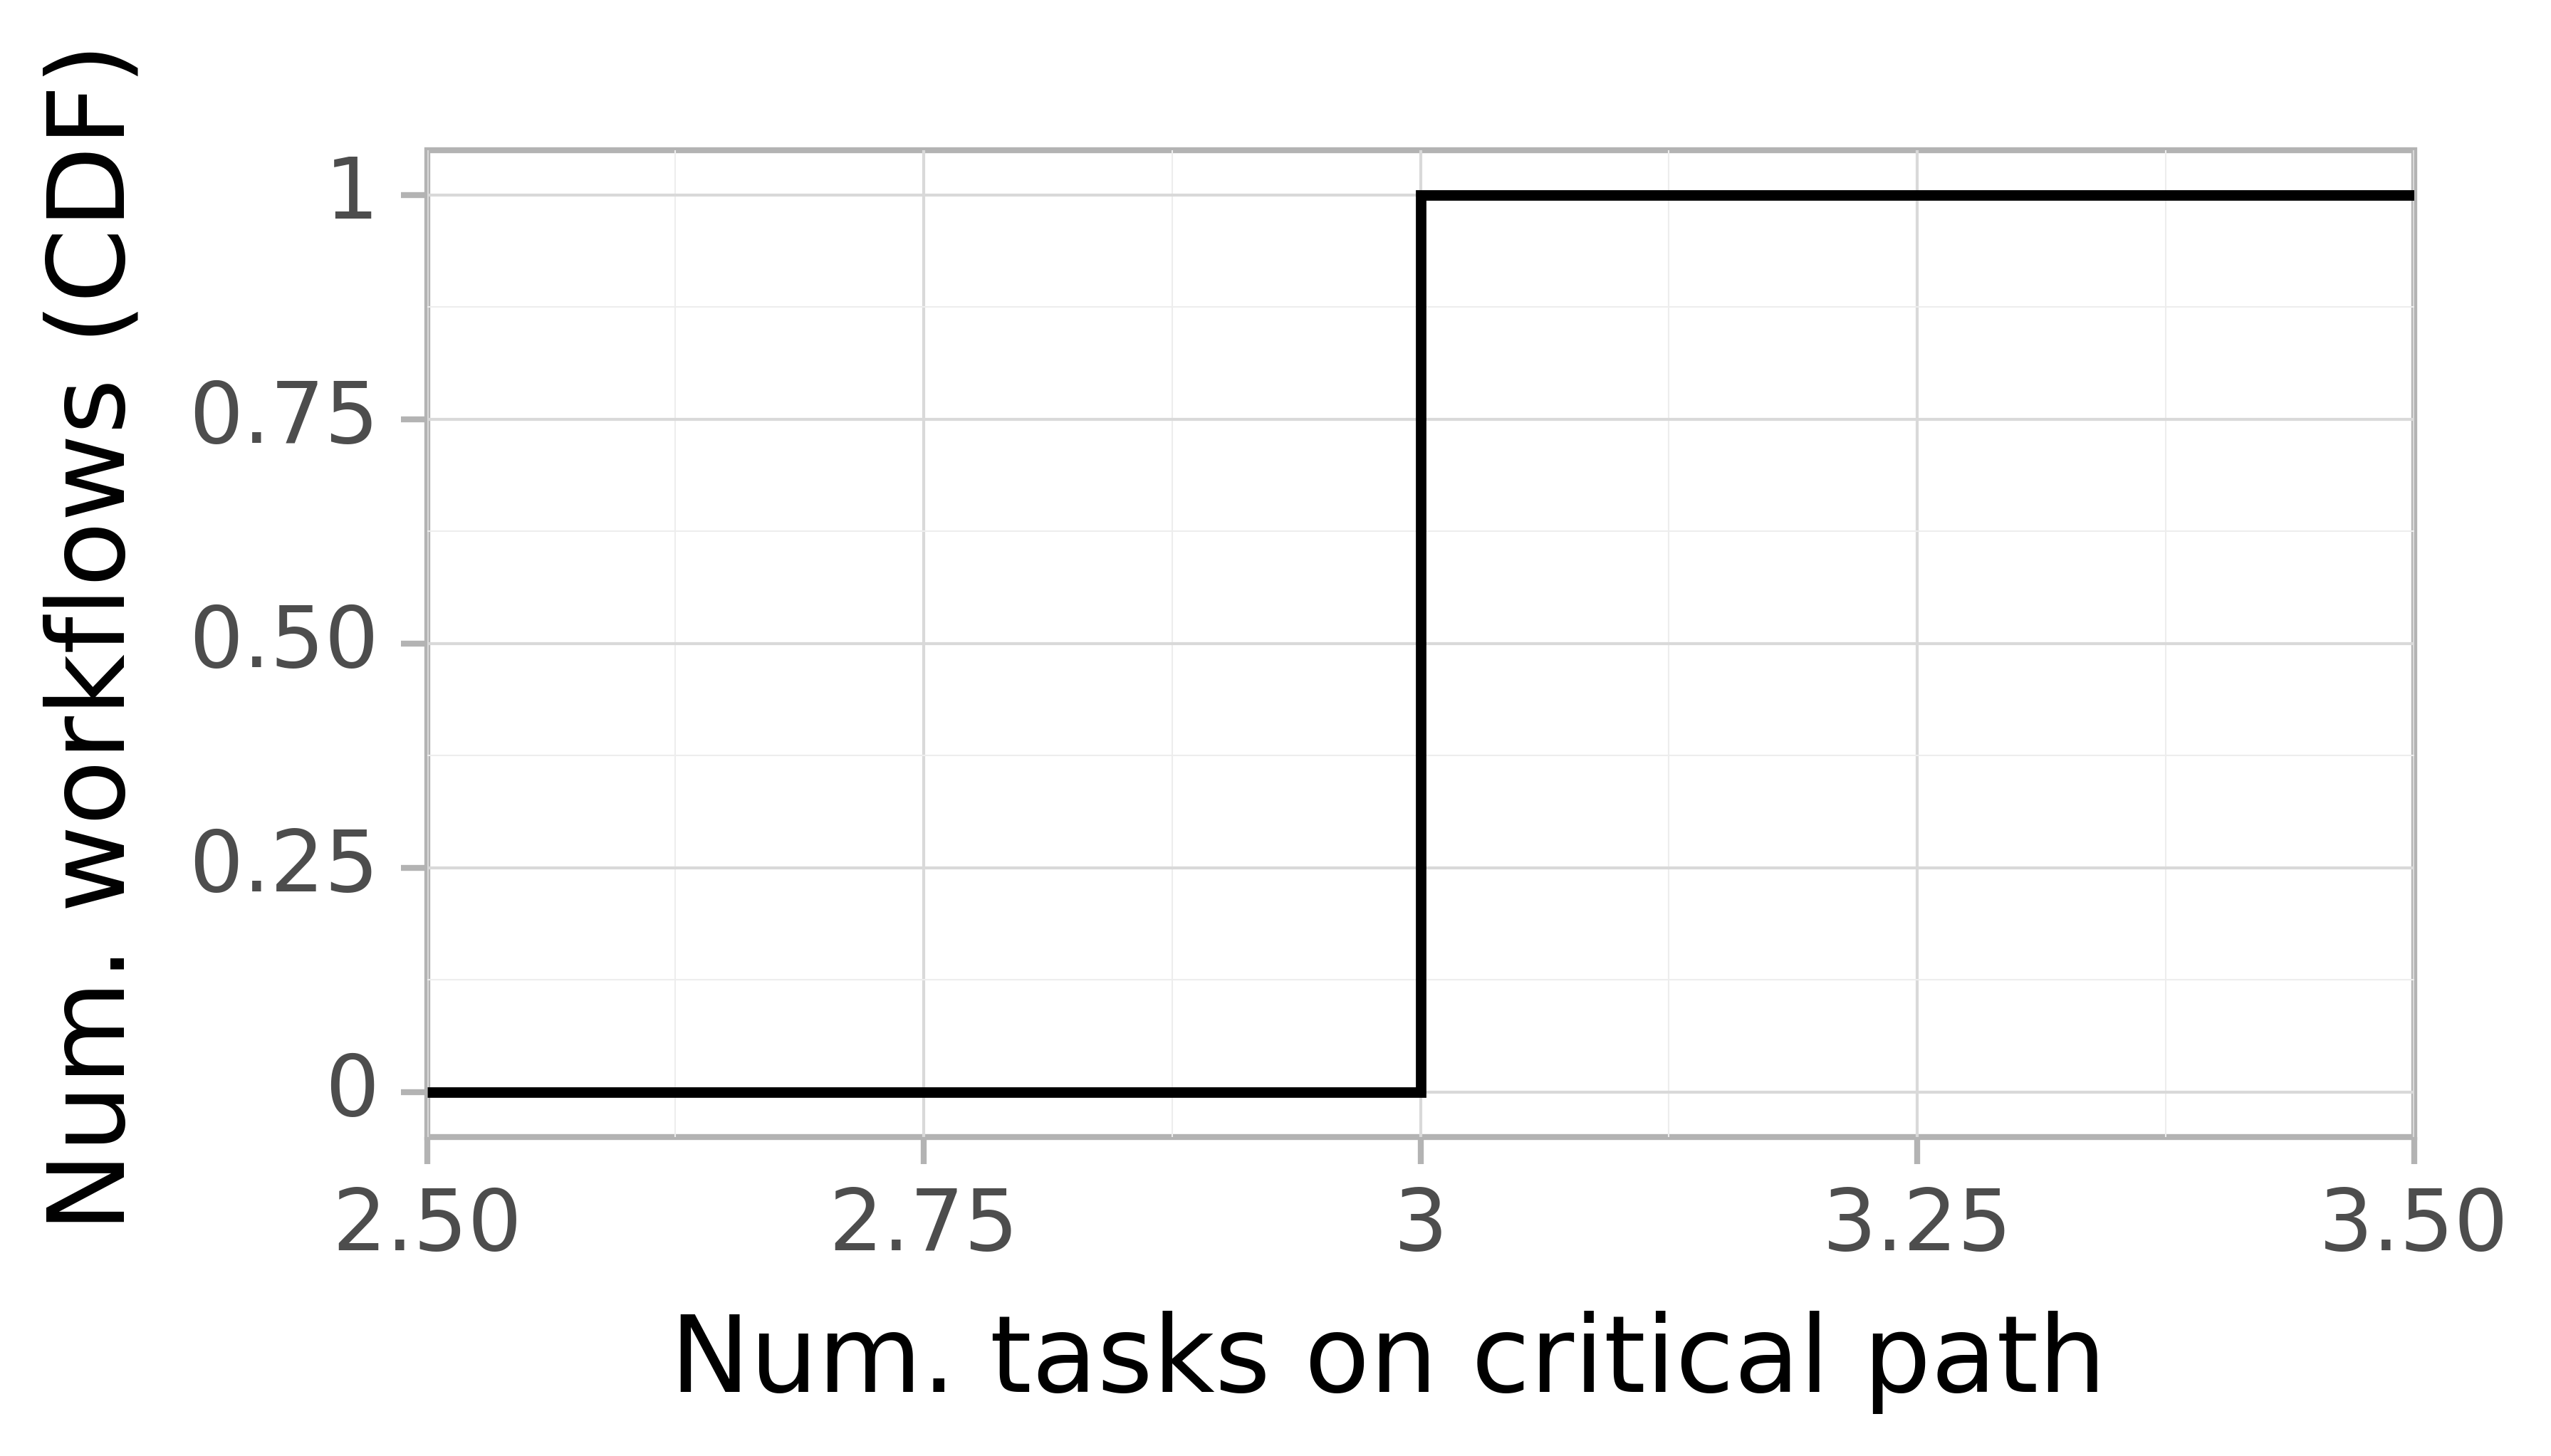 Job critical path task count graph for the askalon-new_ee60 trace.